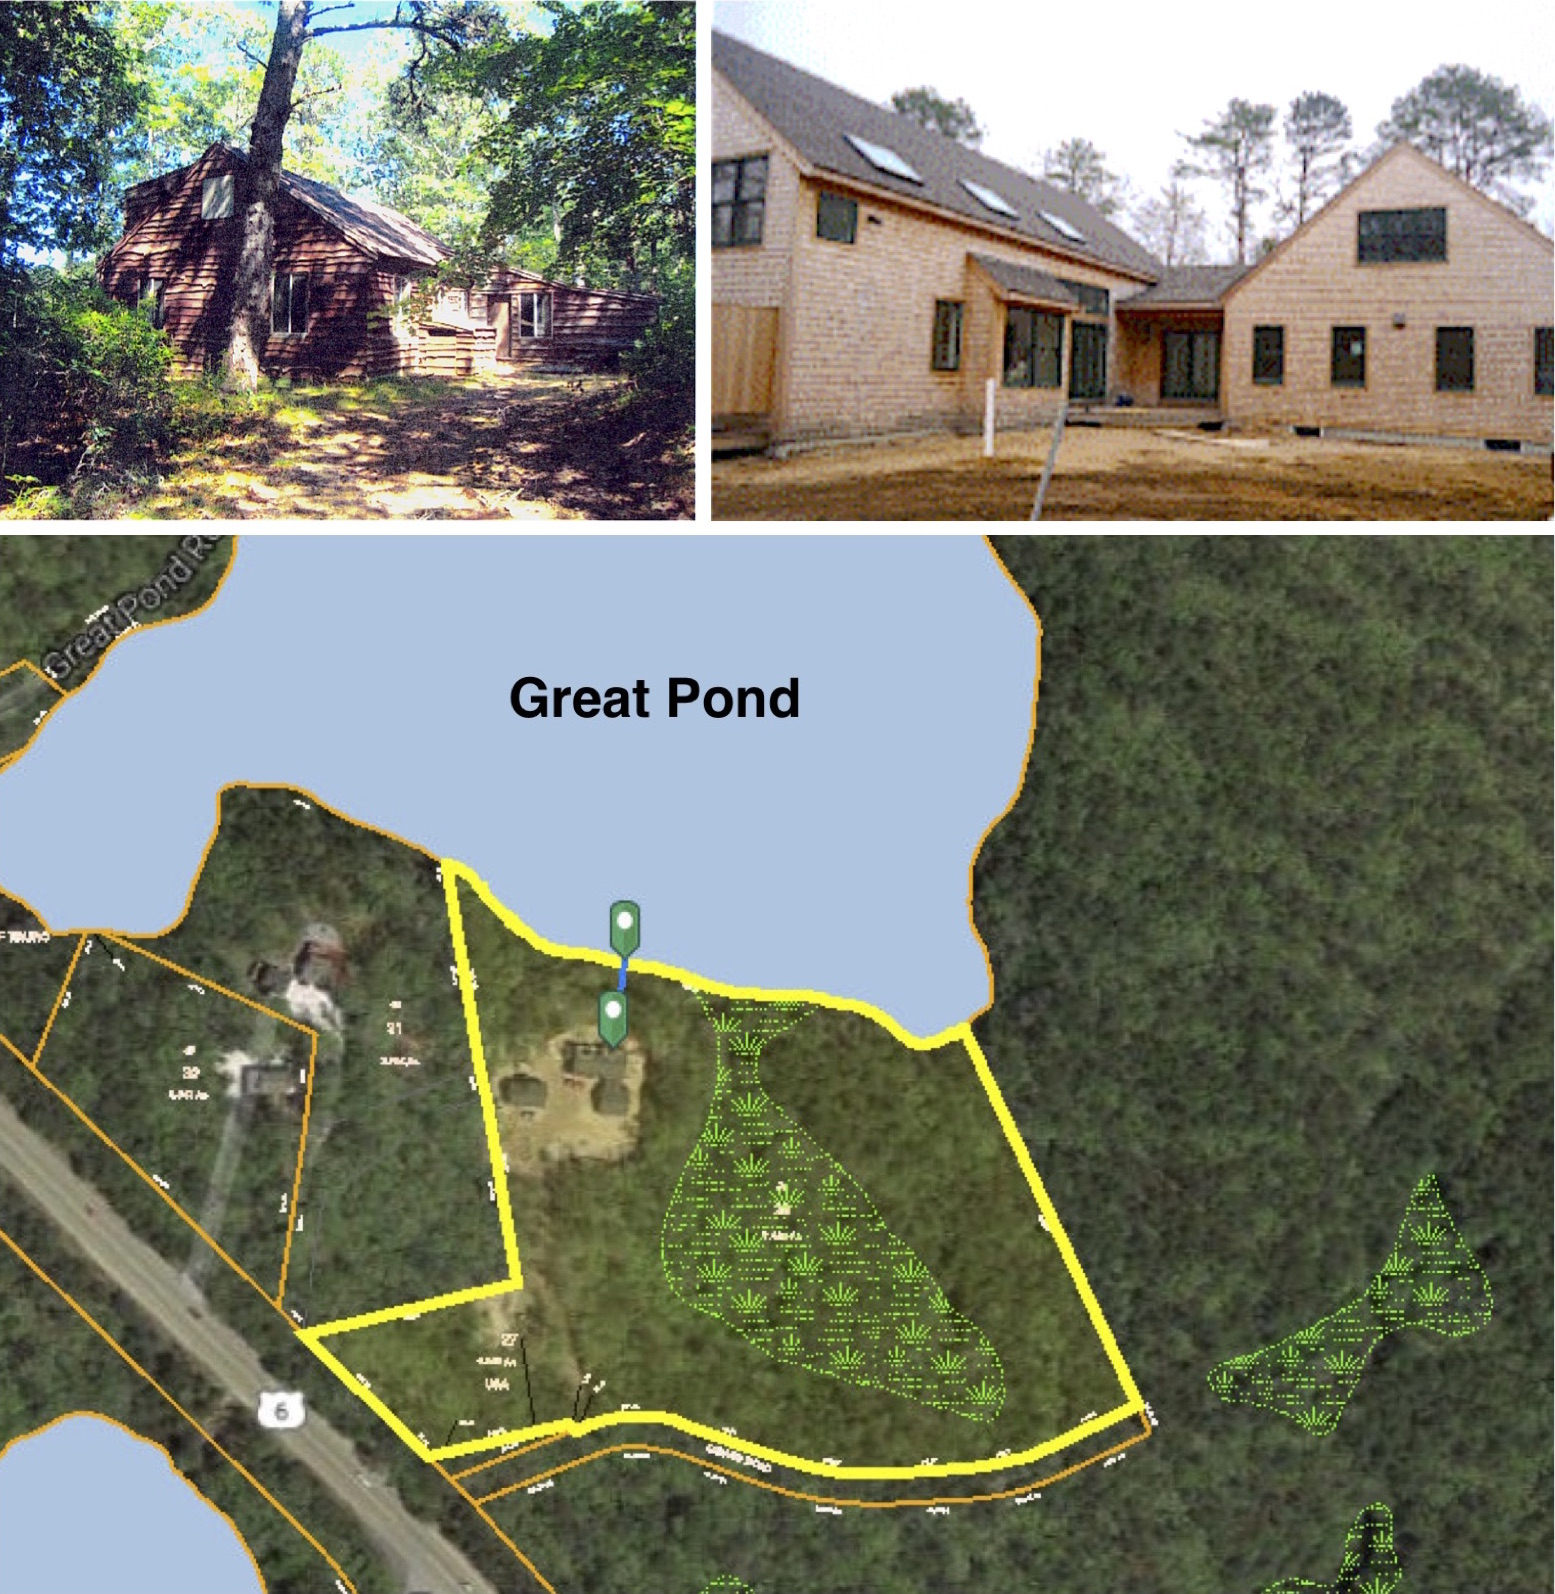 The 1940's 1,504 sq. ft. cottage   was recently replaced by this 3,988 sq. ft. house on Great Pond without Site Plan Review.